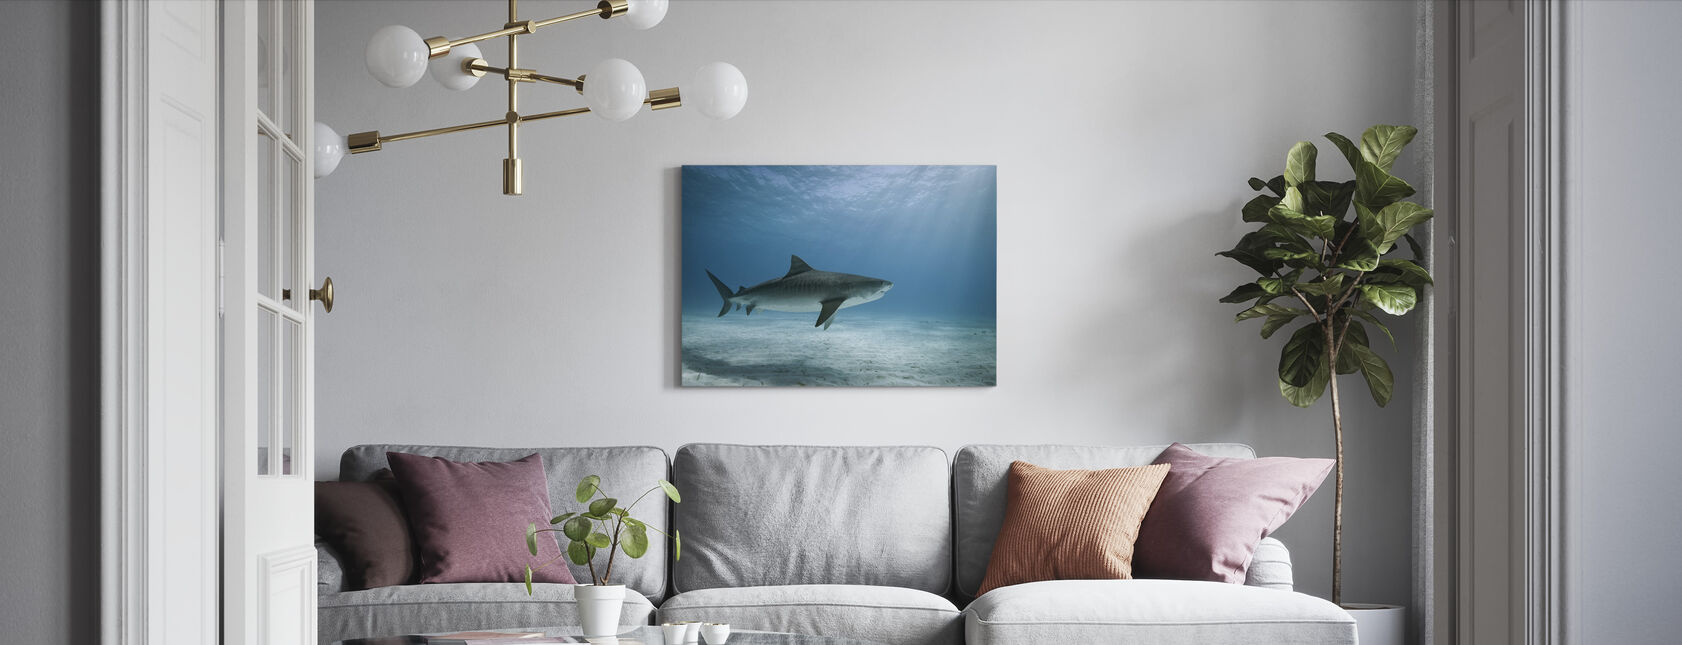 Tiger Shark - Canvas print - Living Room